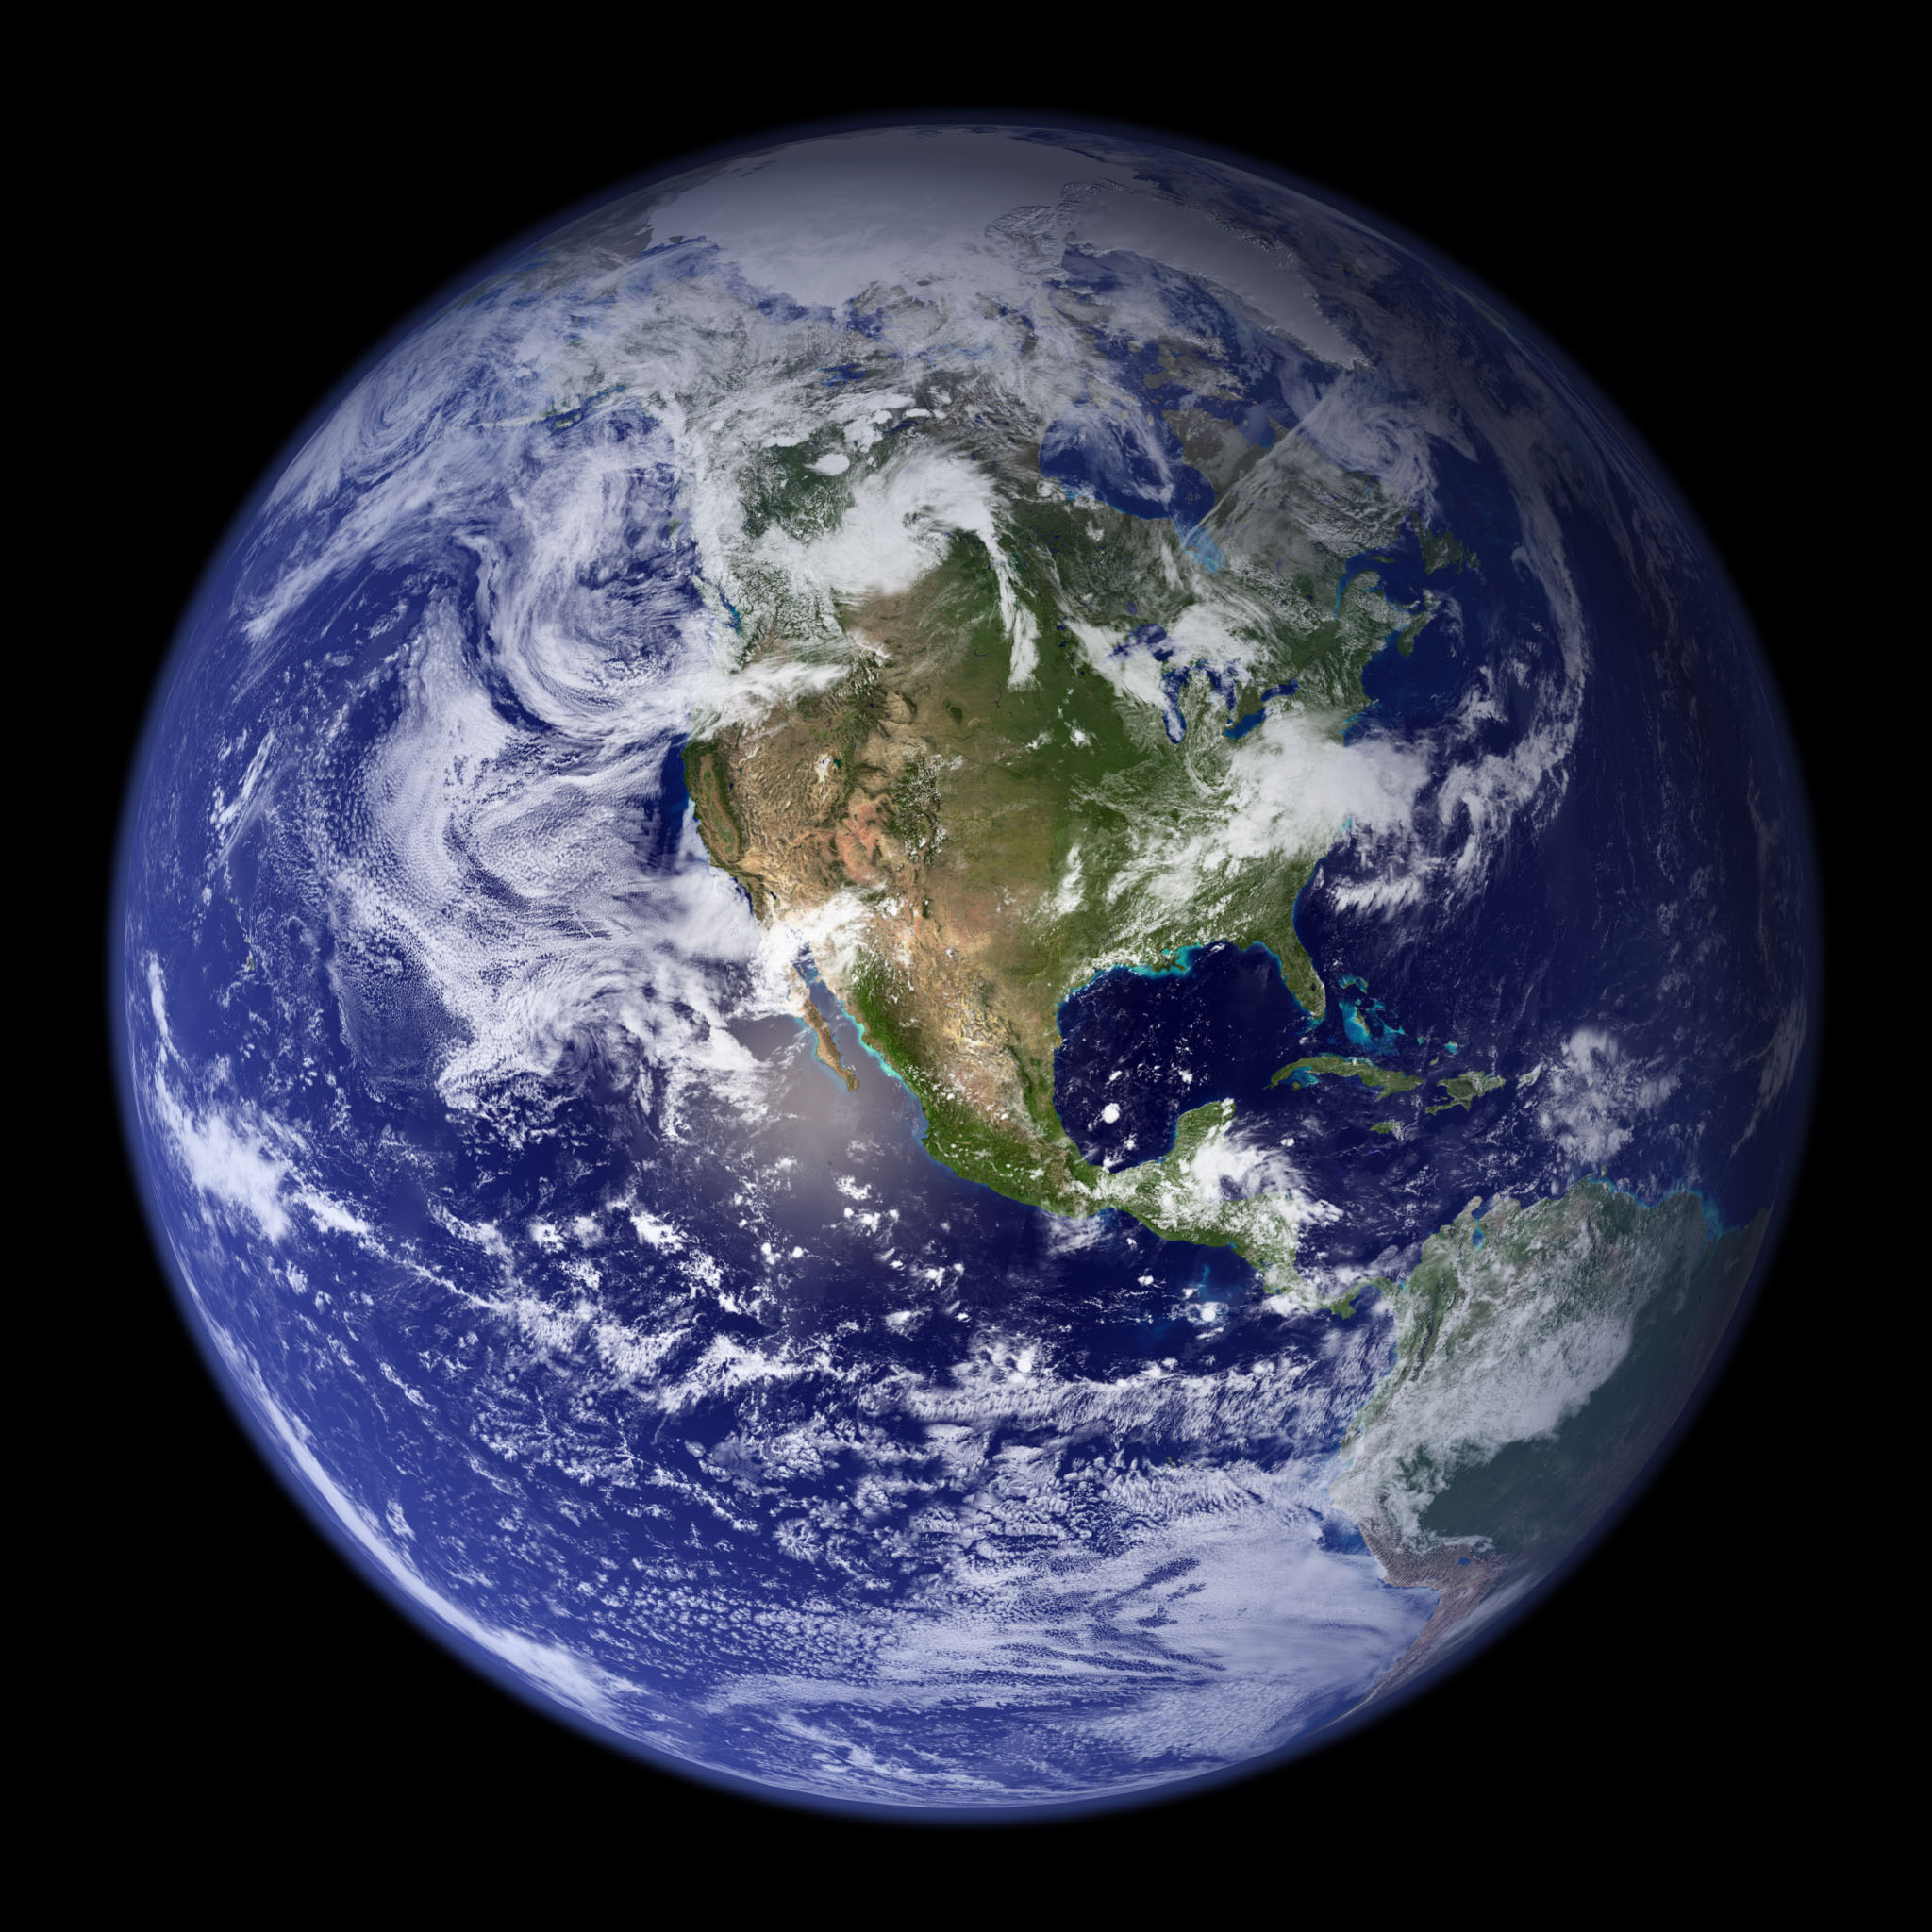 Nasa Visible Earth The Blue Marble